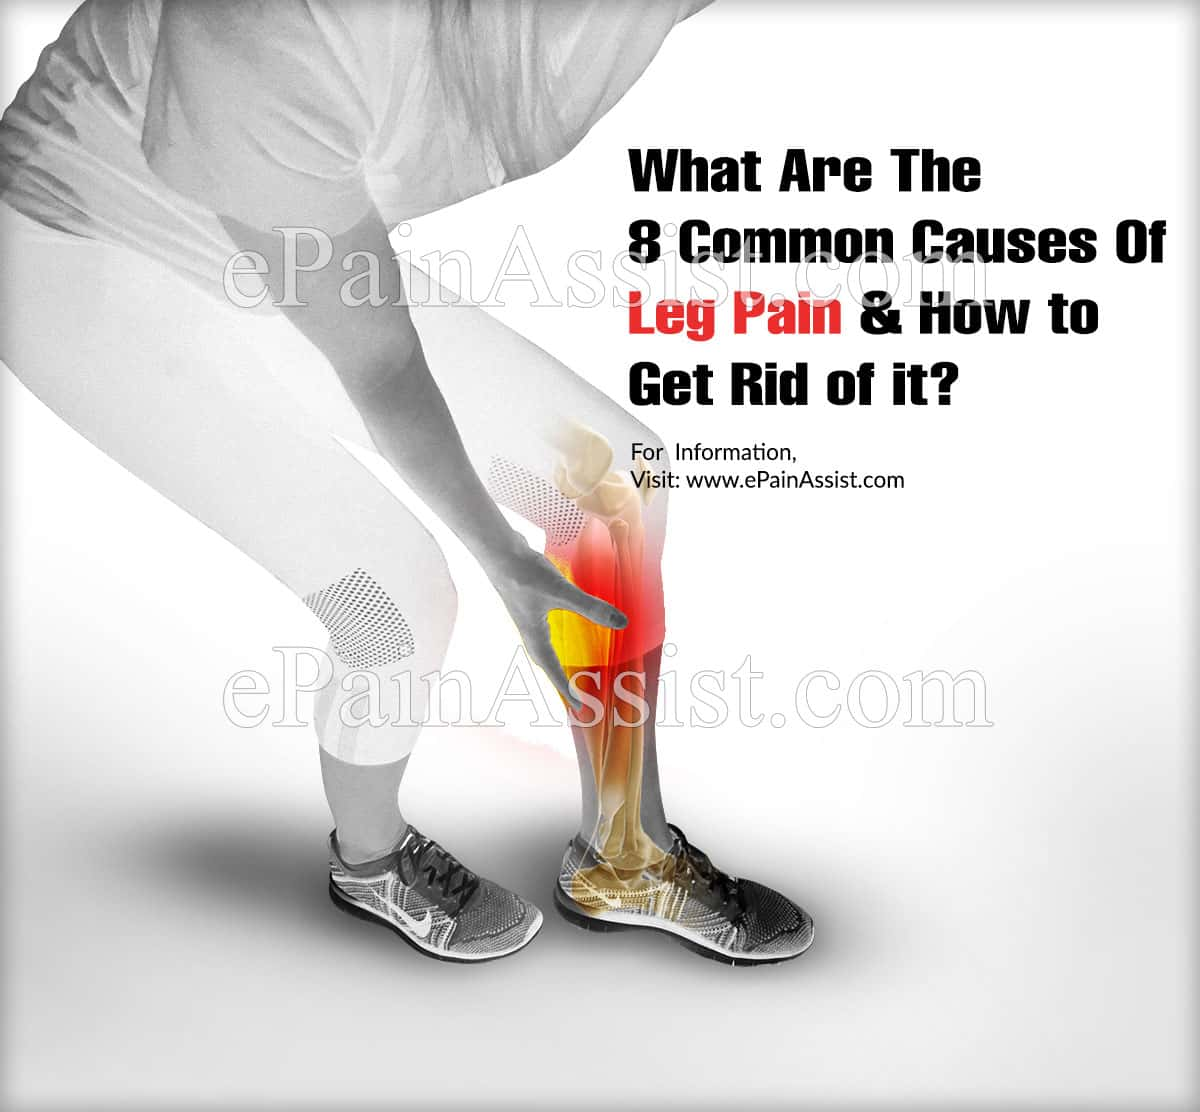 What Are The 8 Common Causes Of Leg Pain & How Can I Get Rid Of It?